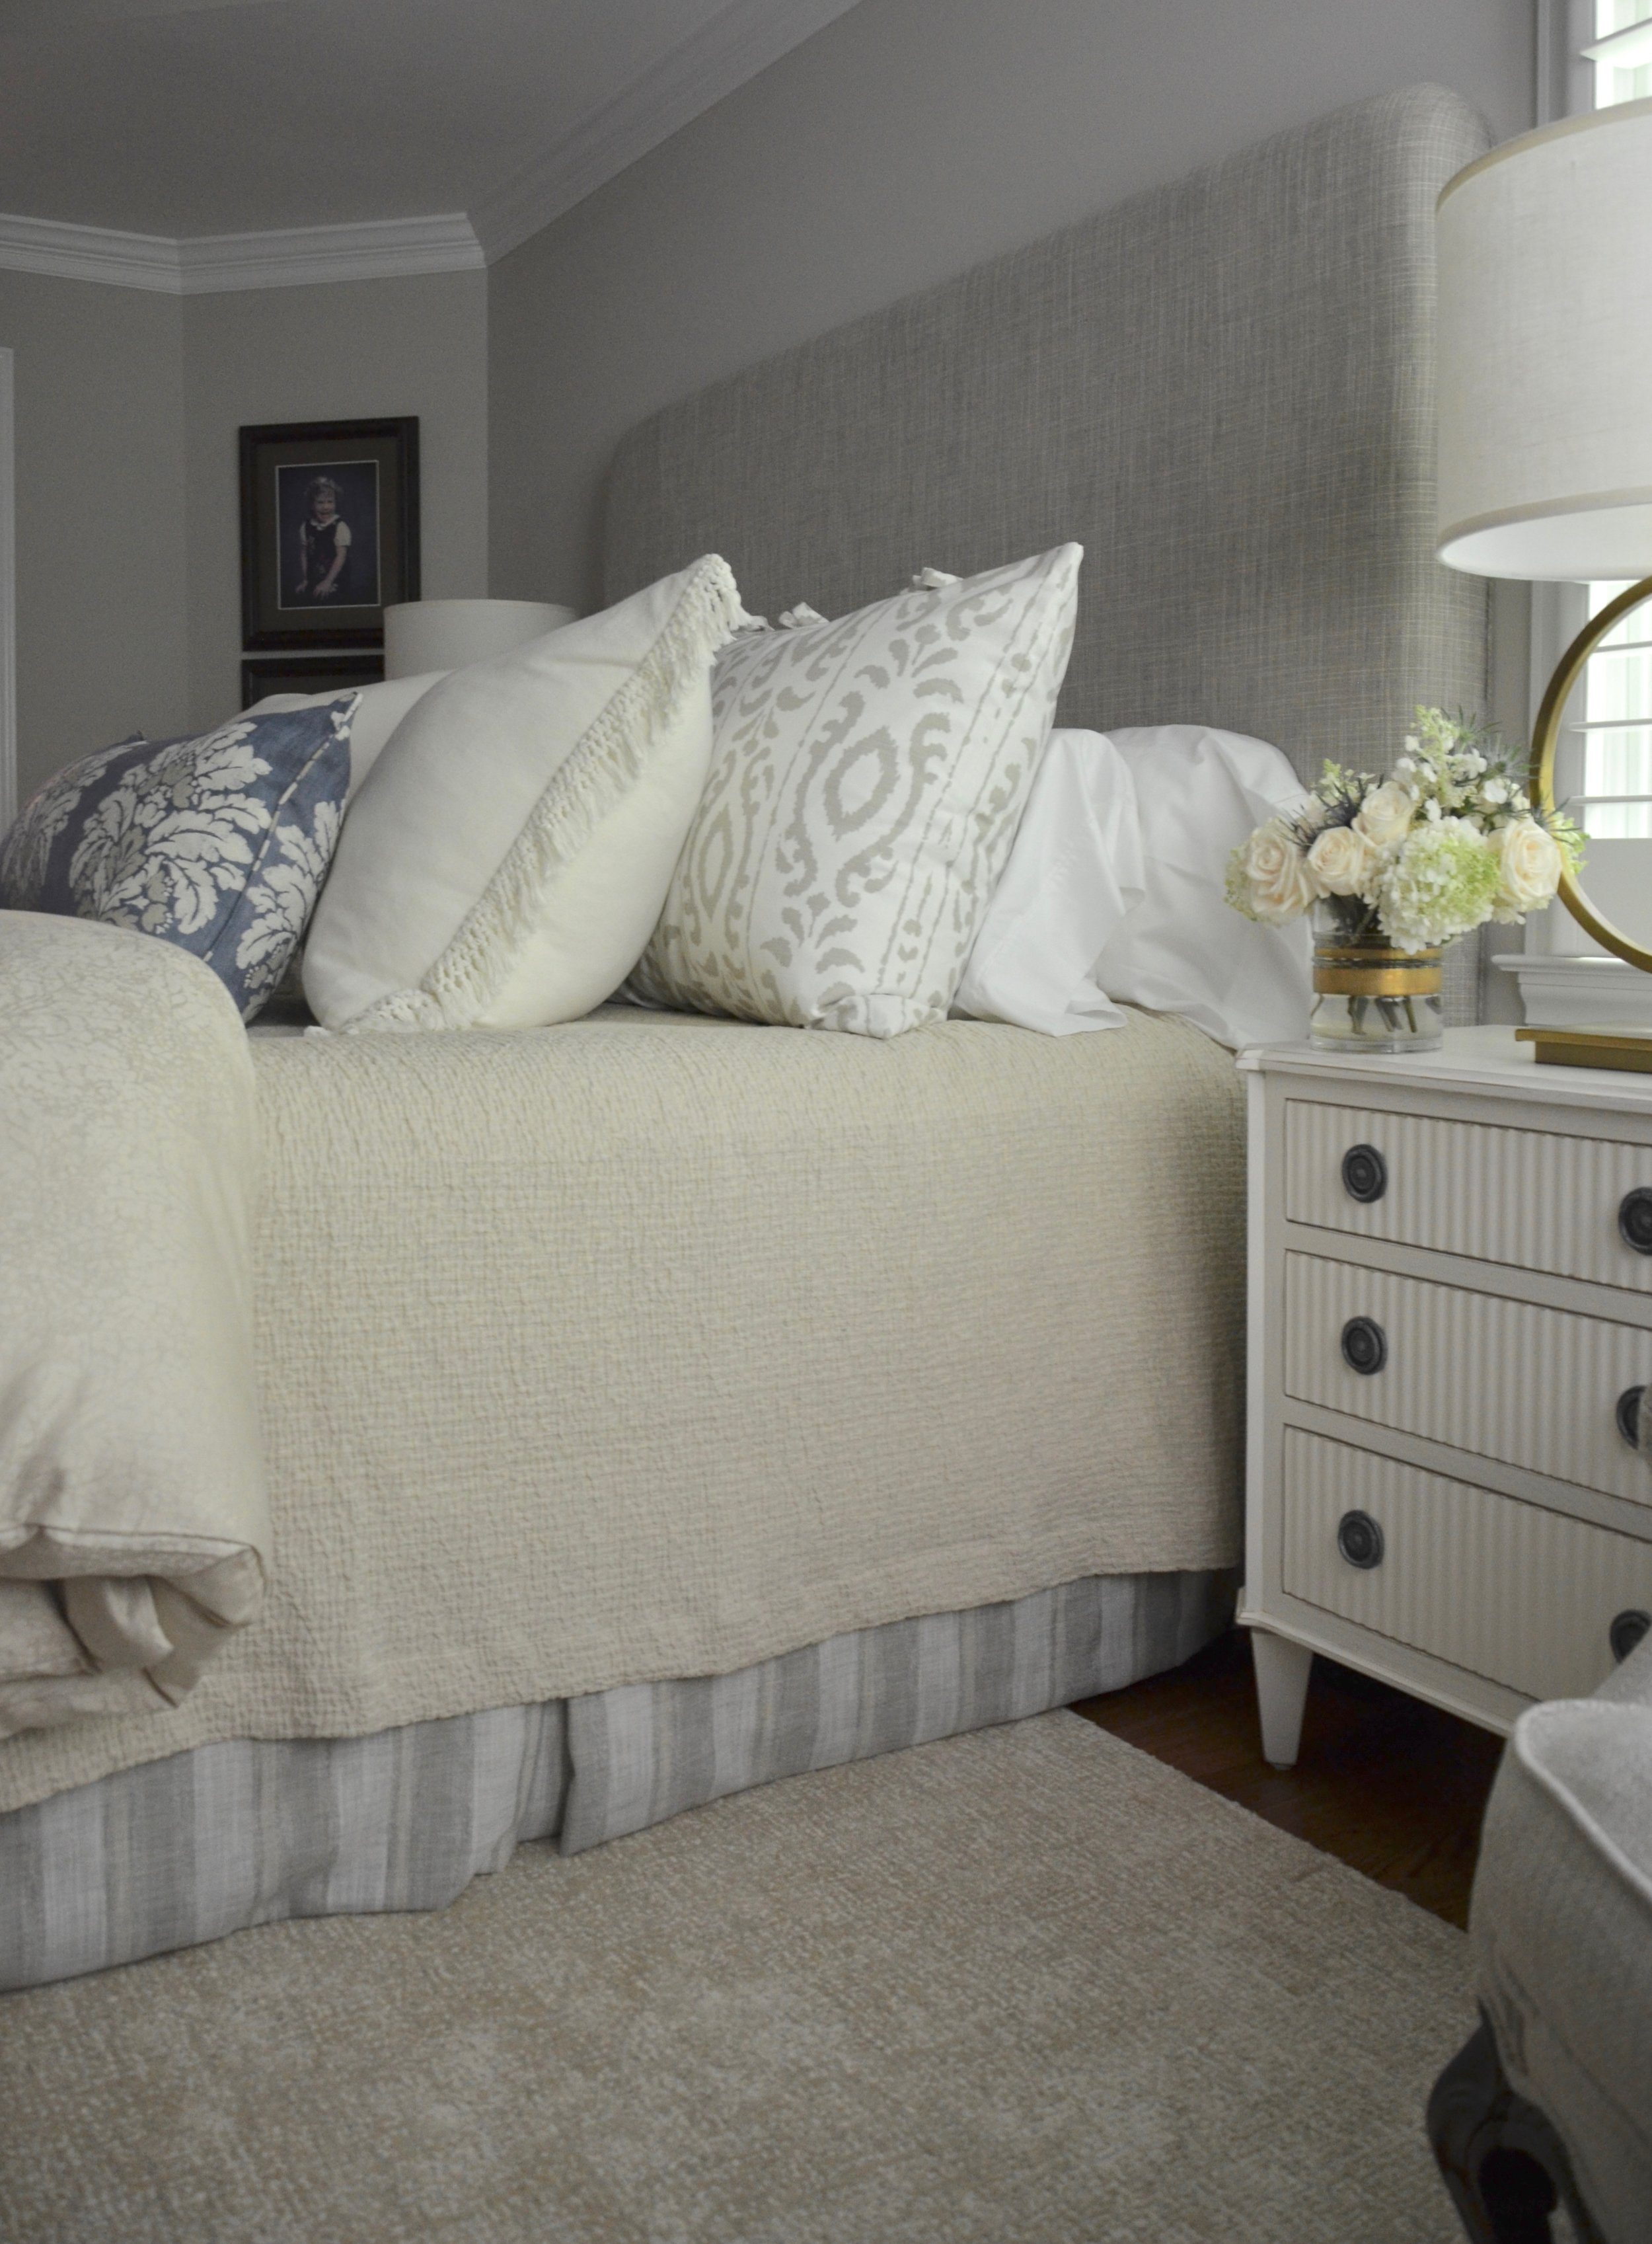 """Custom headboard, bedskirt, and rug with new bedding by SDH in client """"Turning-down for an Update"""" in McLean, VA.Turndown Service and Design by Valerianne of DC."""